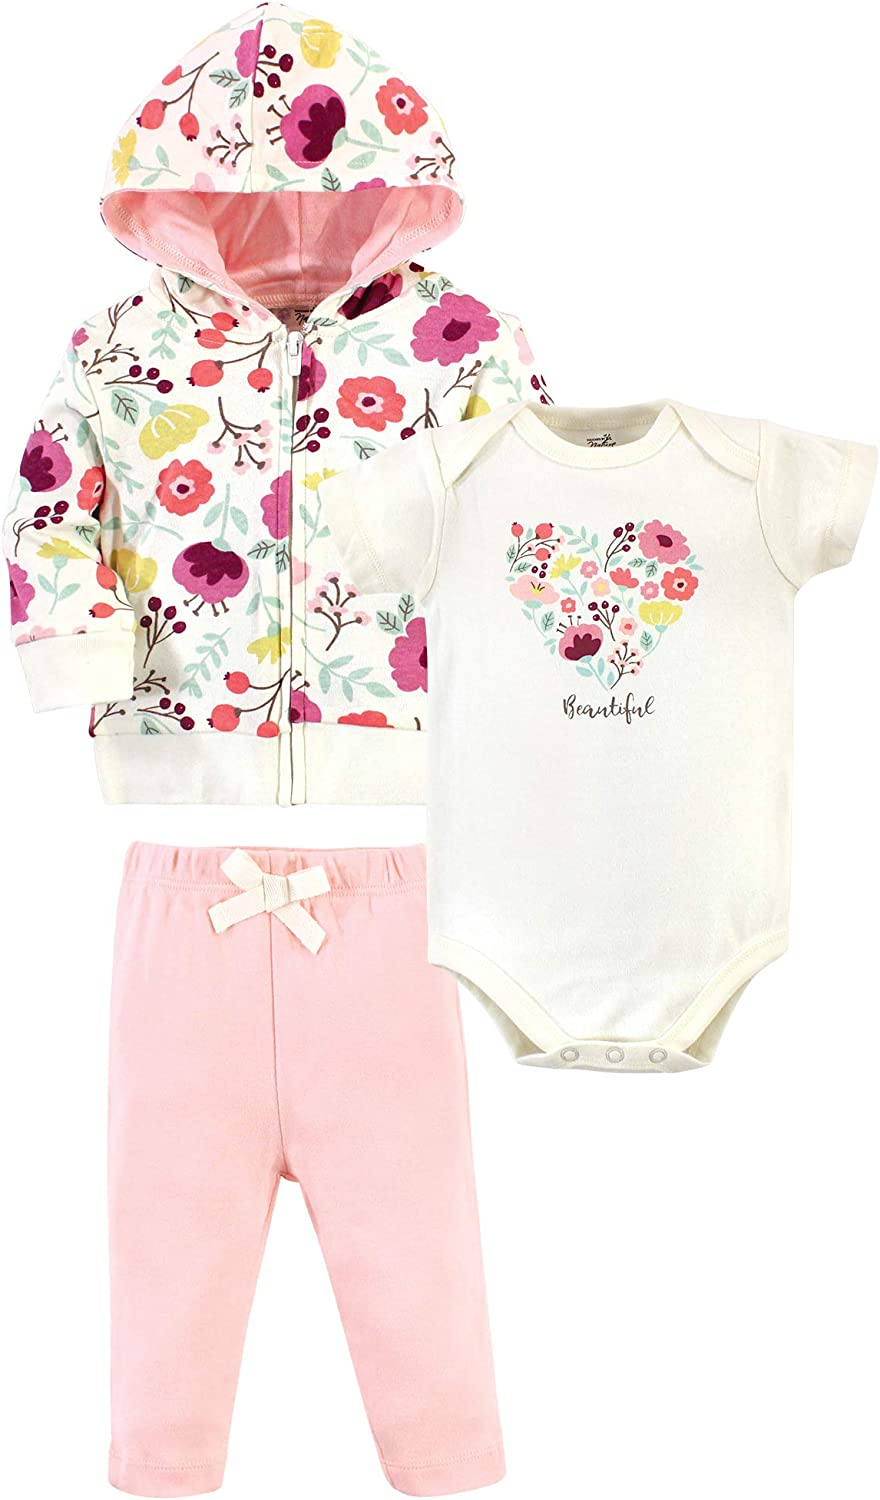 Touched by Nature baby-girls Organic Cotton Hoodie, Bodysuit Or Tee Top, and Pant